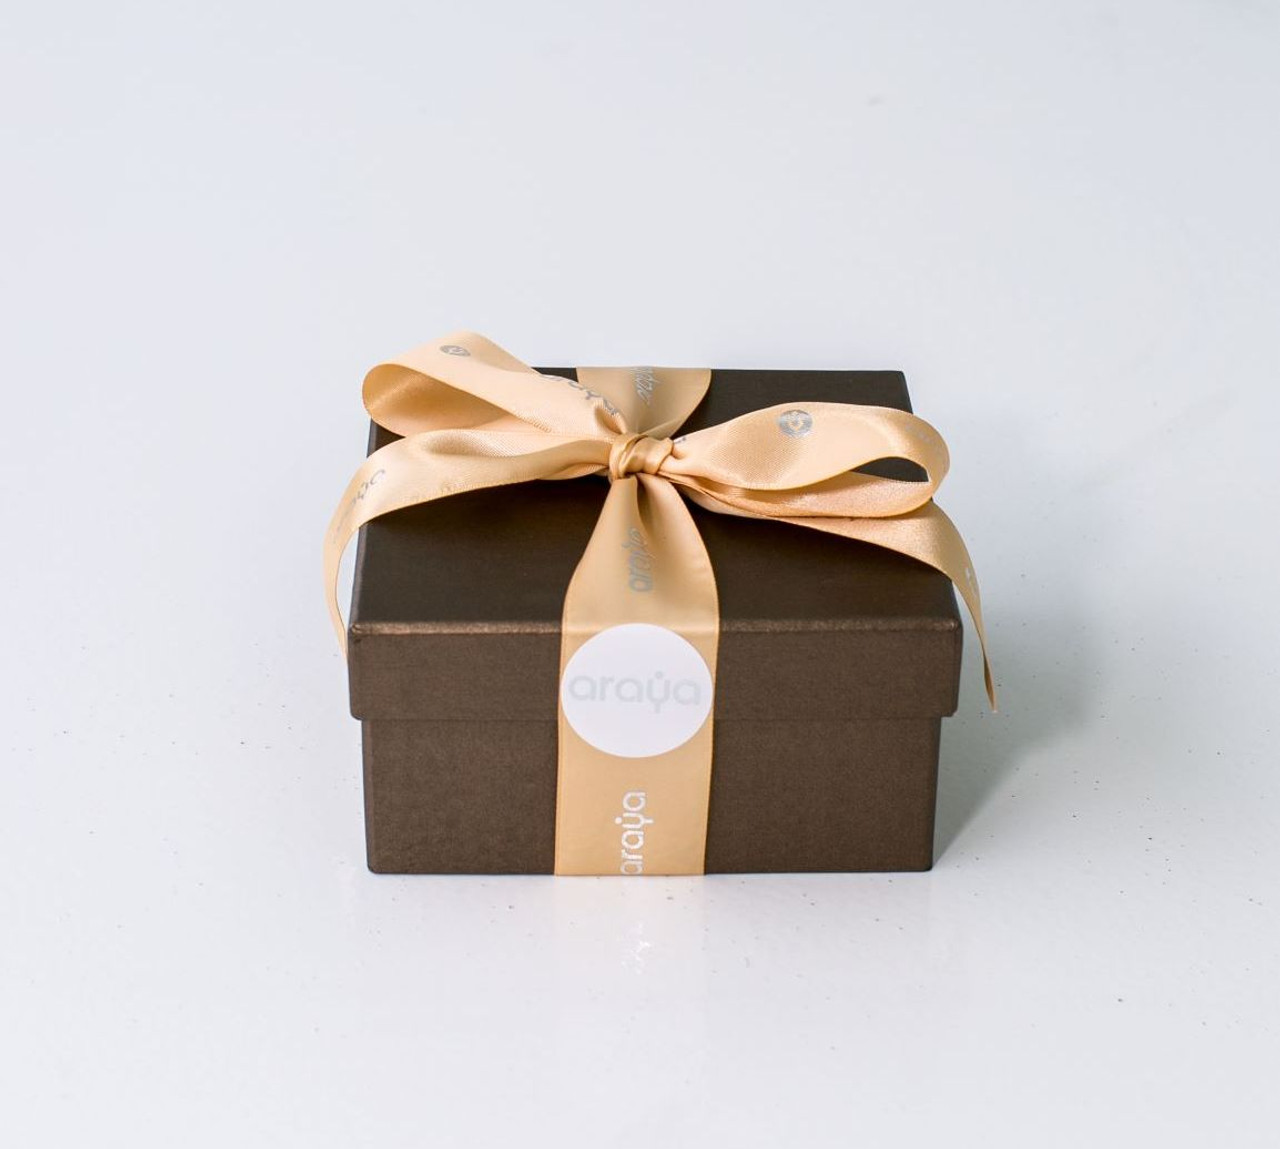 9 Macaron Gift Box -  Available in Red & Bronze